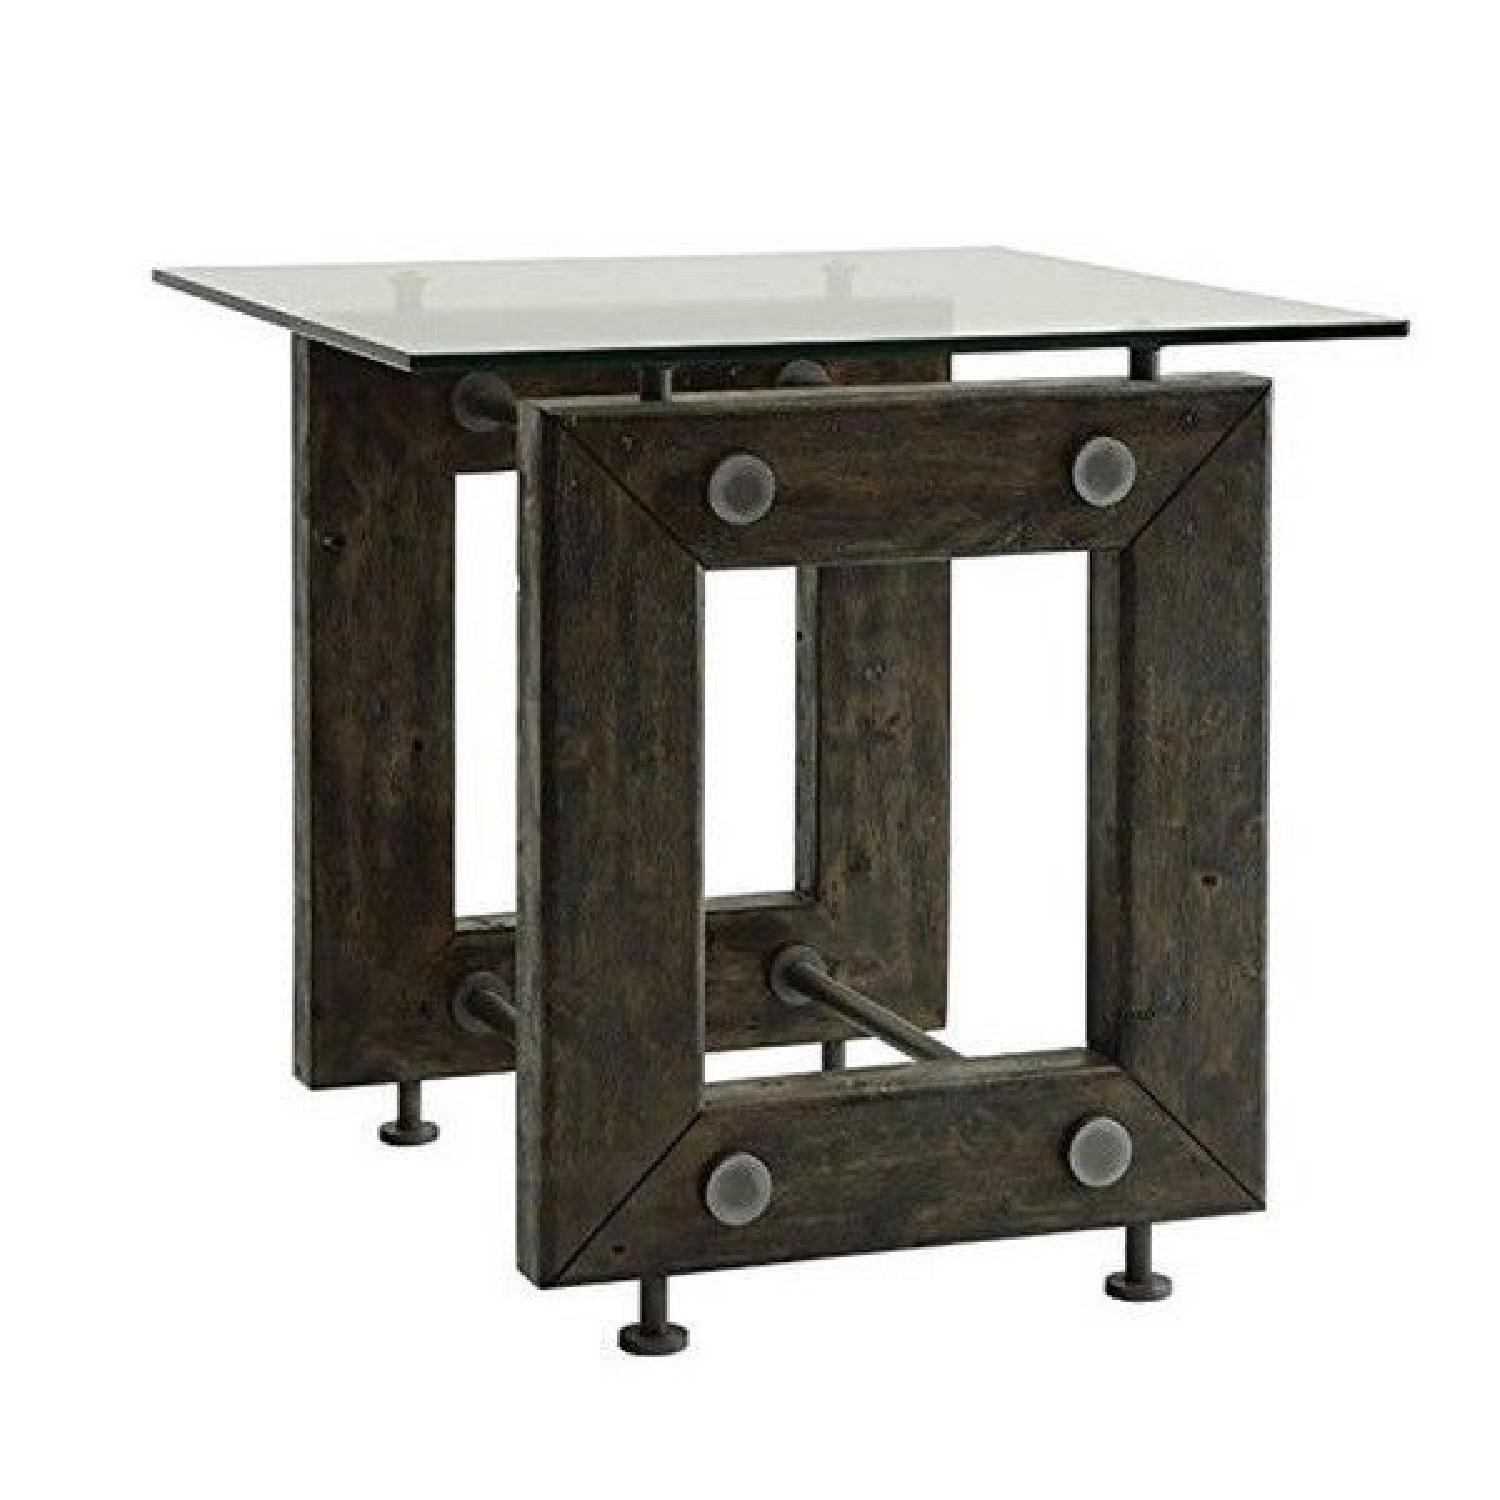 Industrial Style Solid Wood Side Table w/ Exposed Bolts & Tempered Glass Top